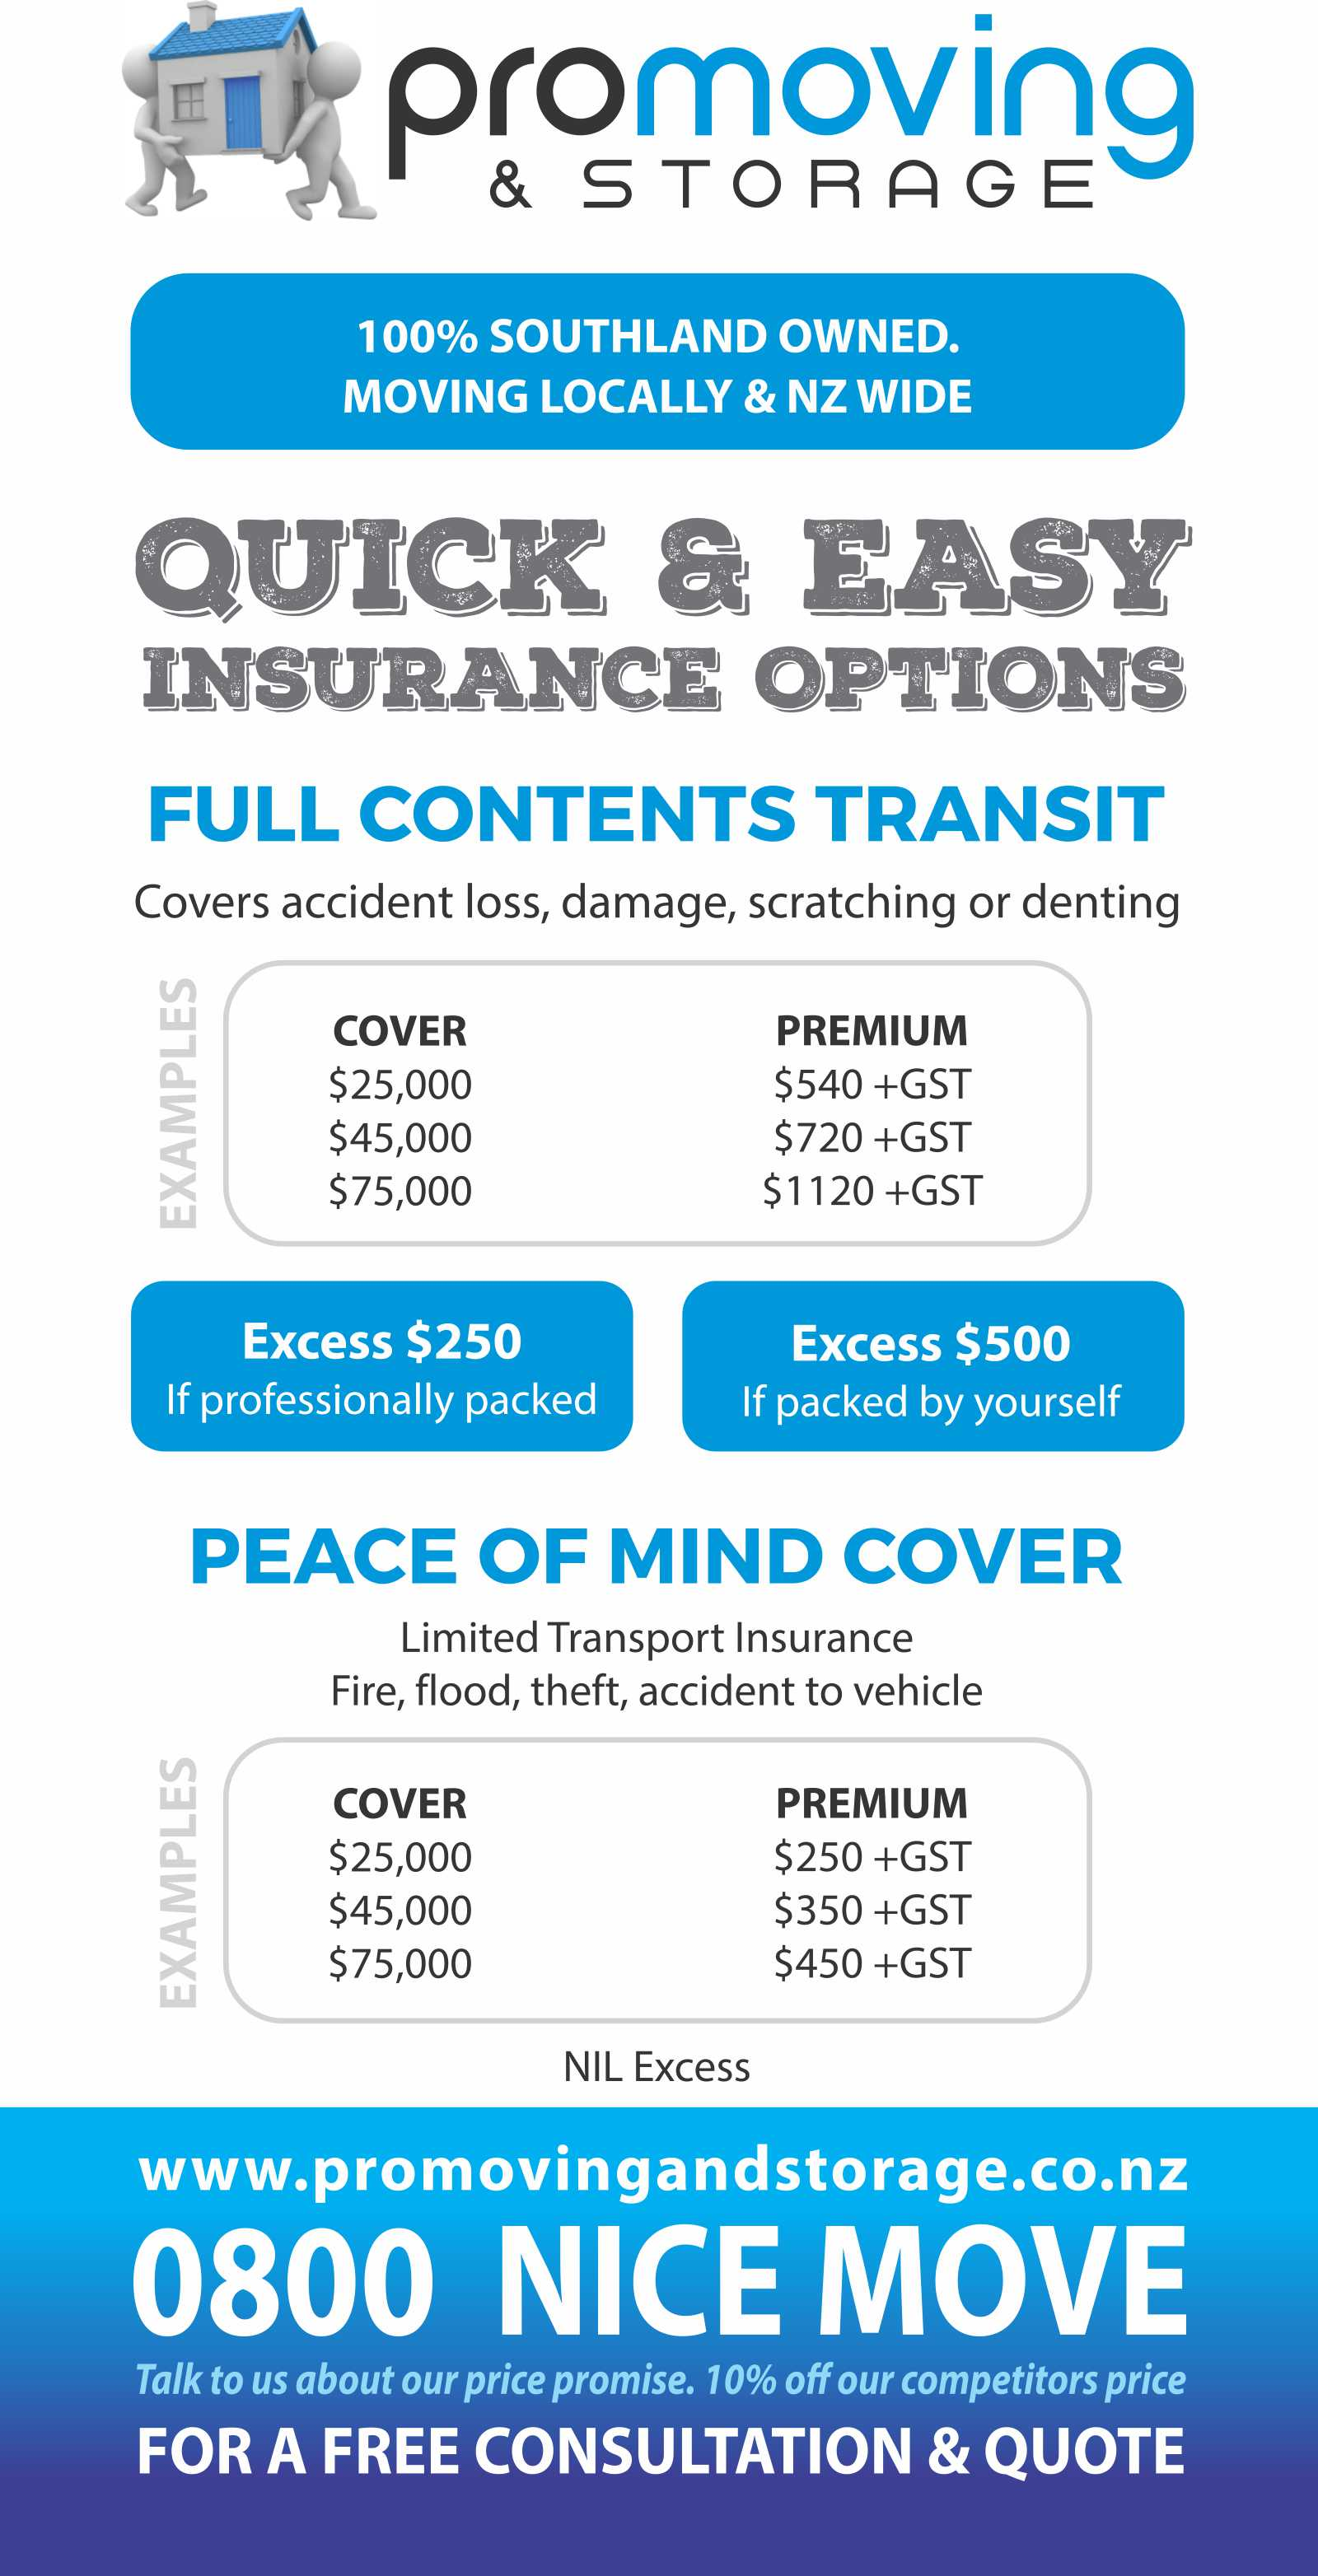 Promoving and storage Insurance options